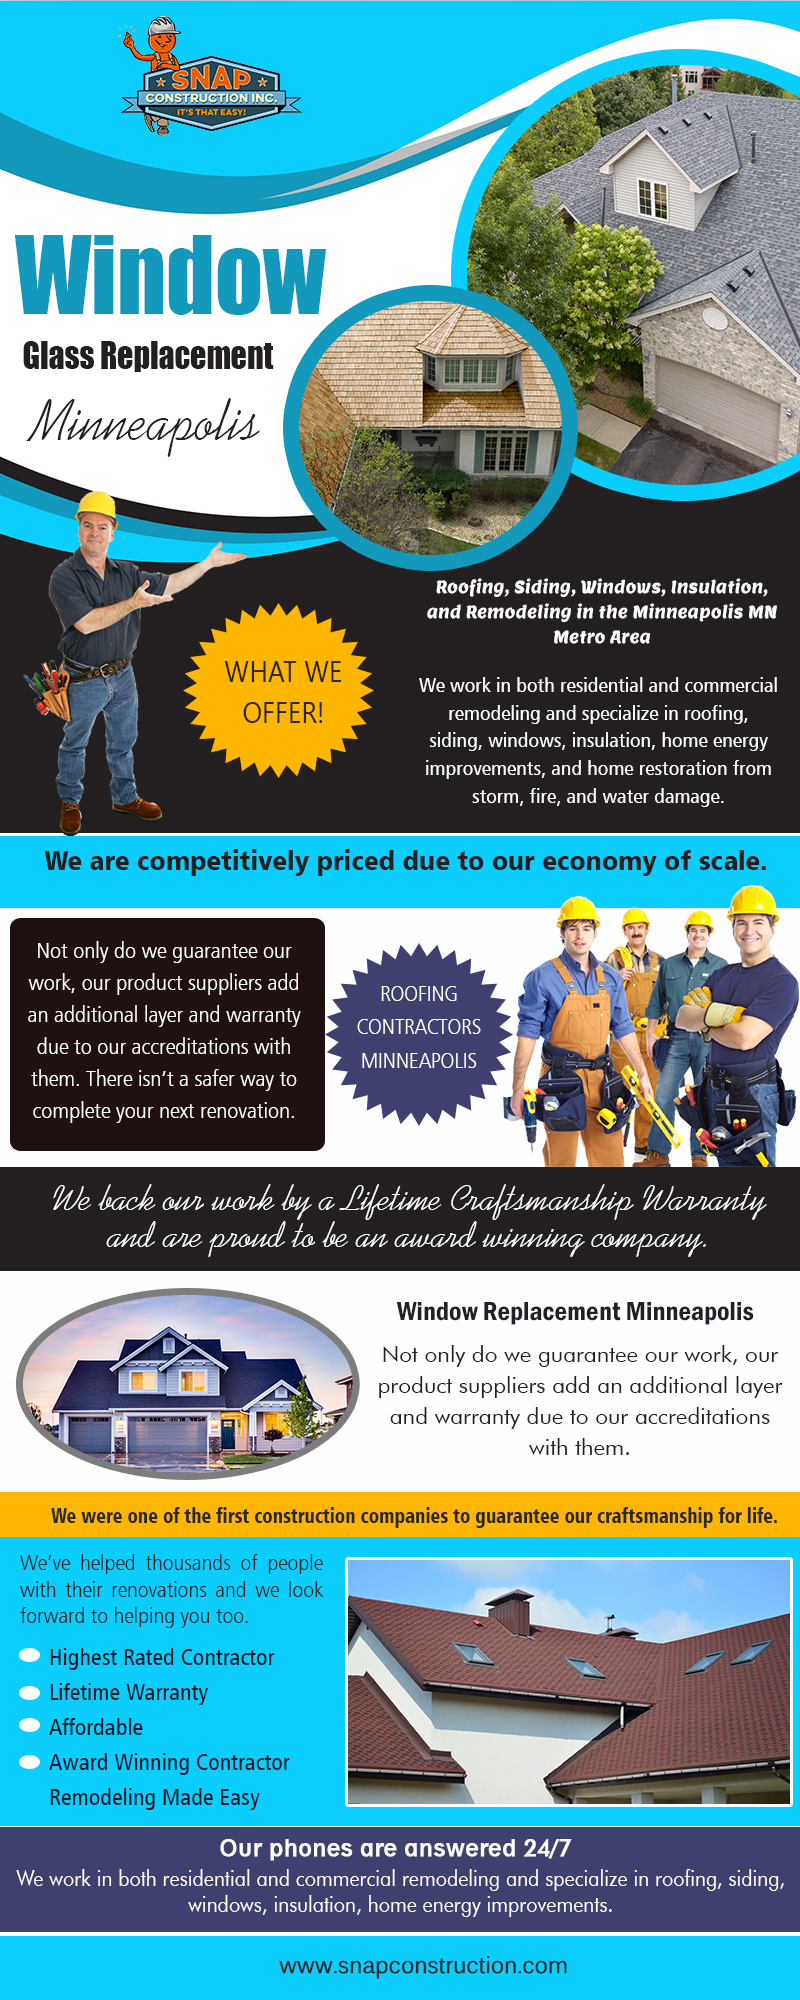 Window Glass Replacement Minneapolis